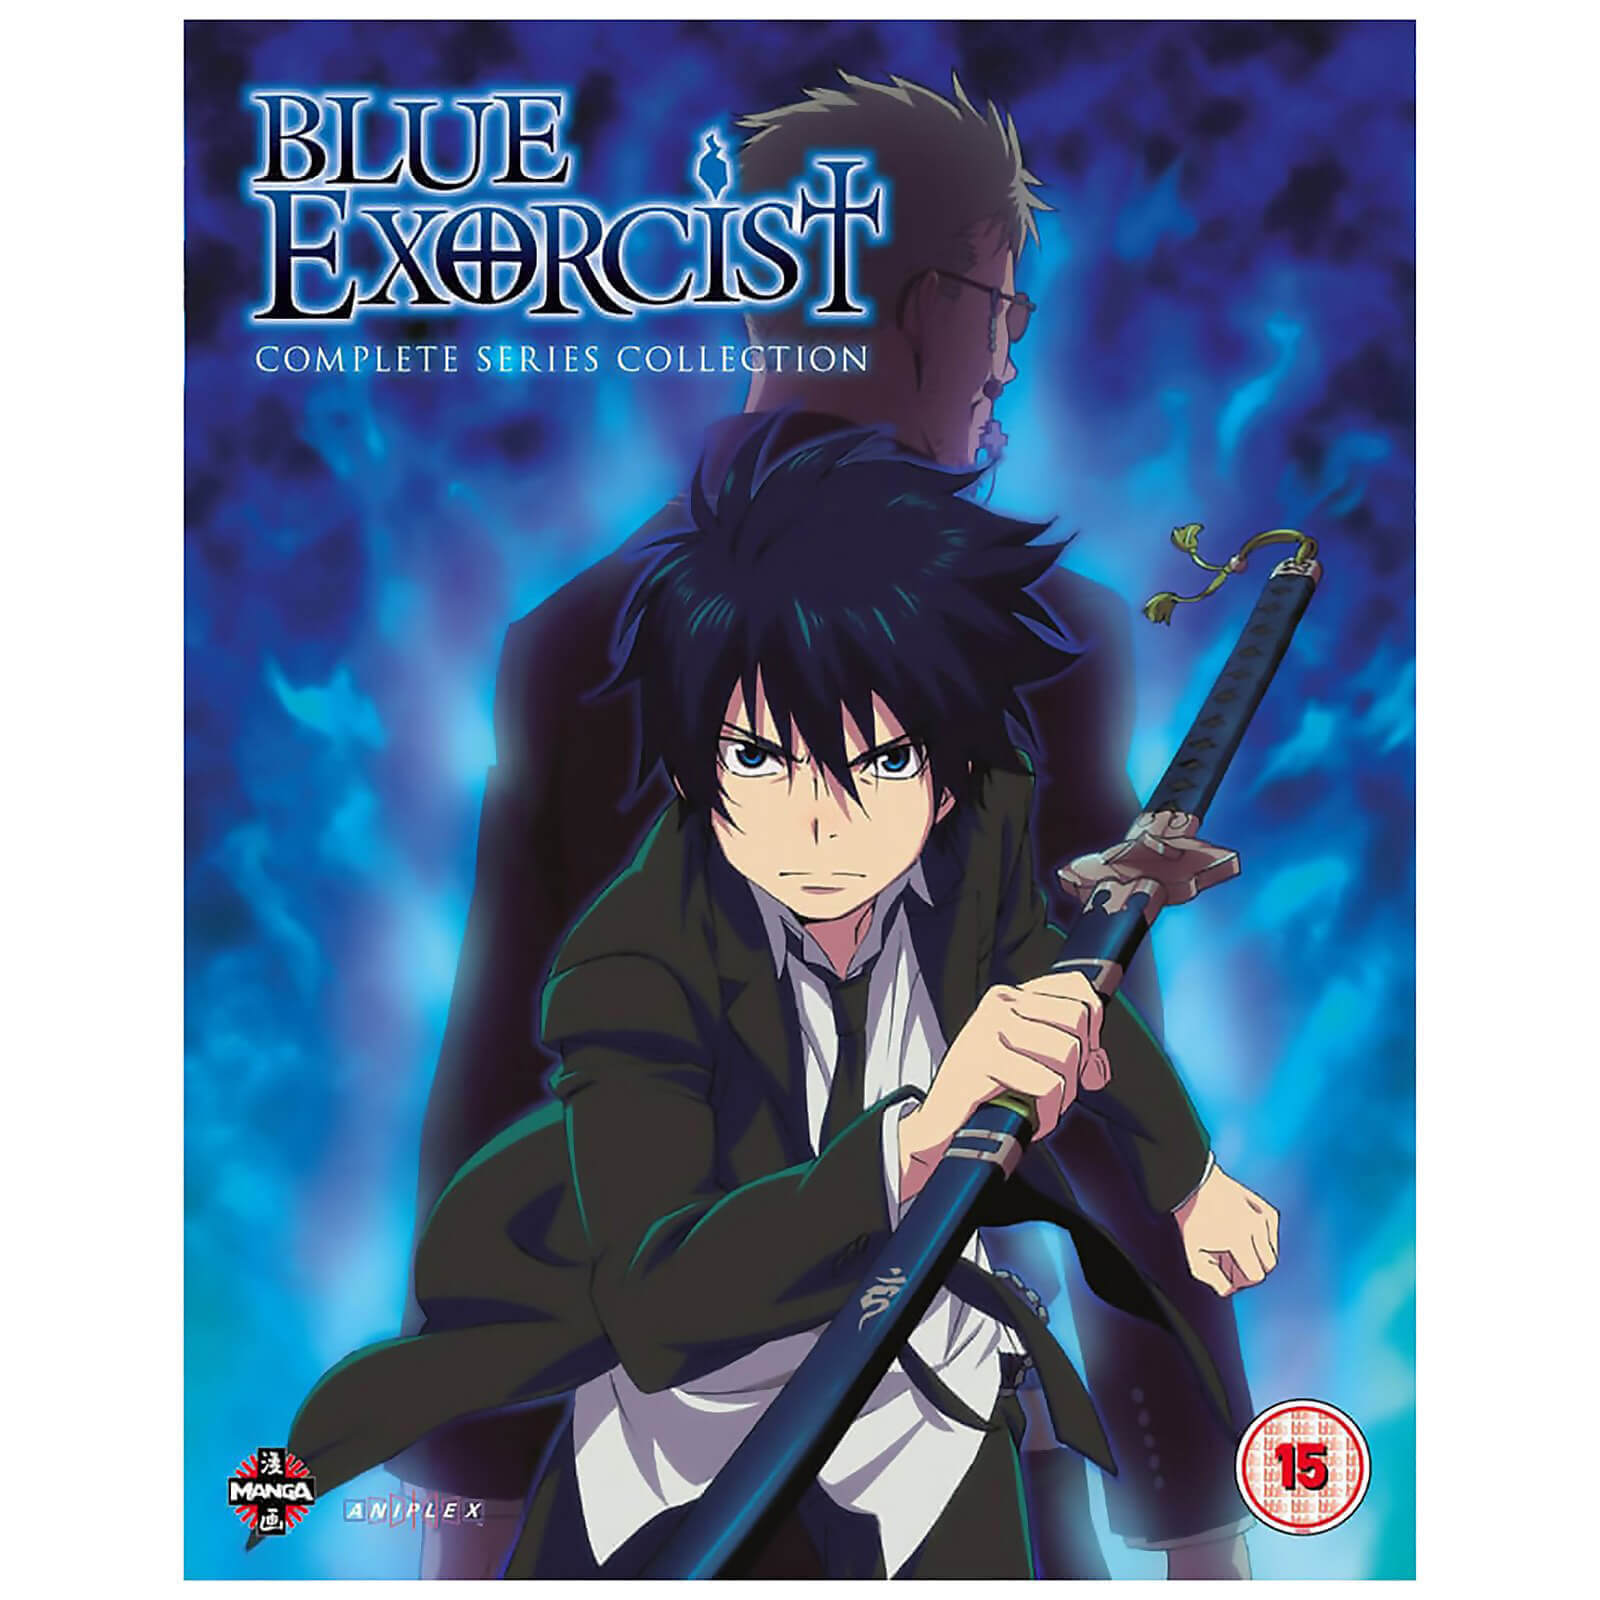 Blue Exorcist: The Complete Series Collection (Episodes 1-25 & OVA) von Manga Entertainment